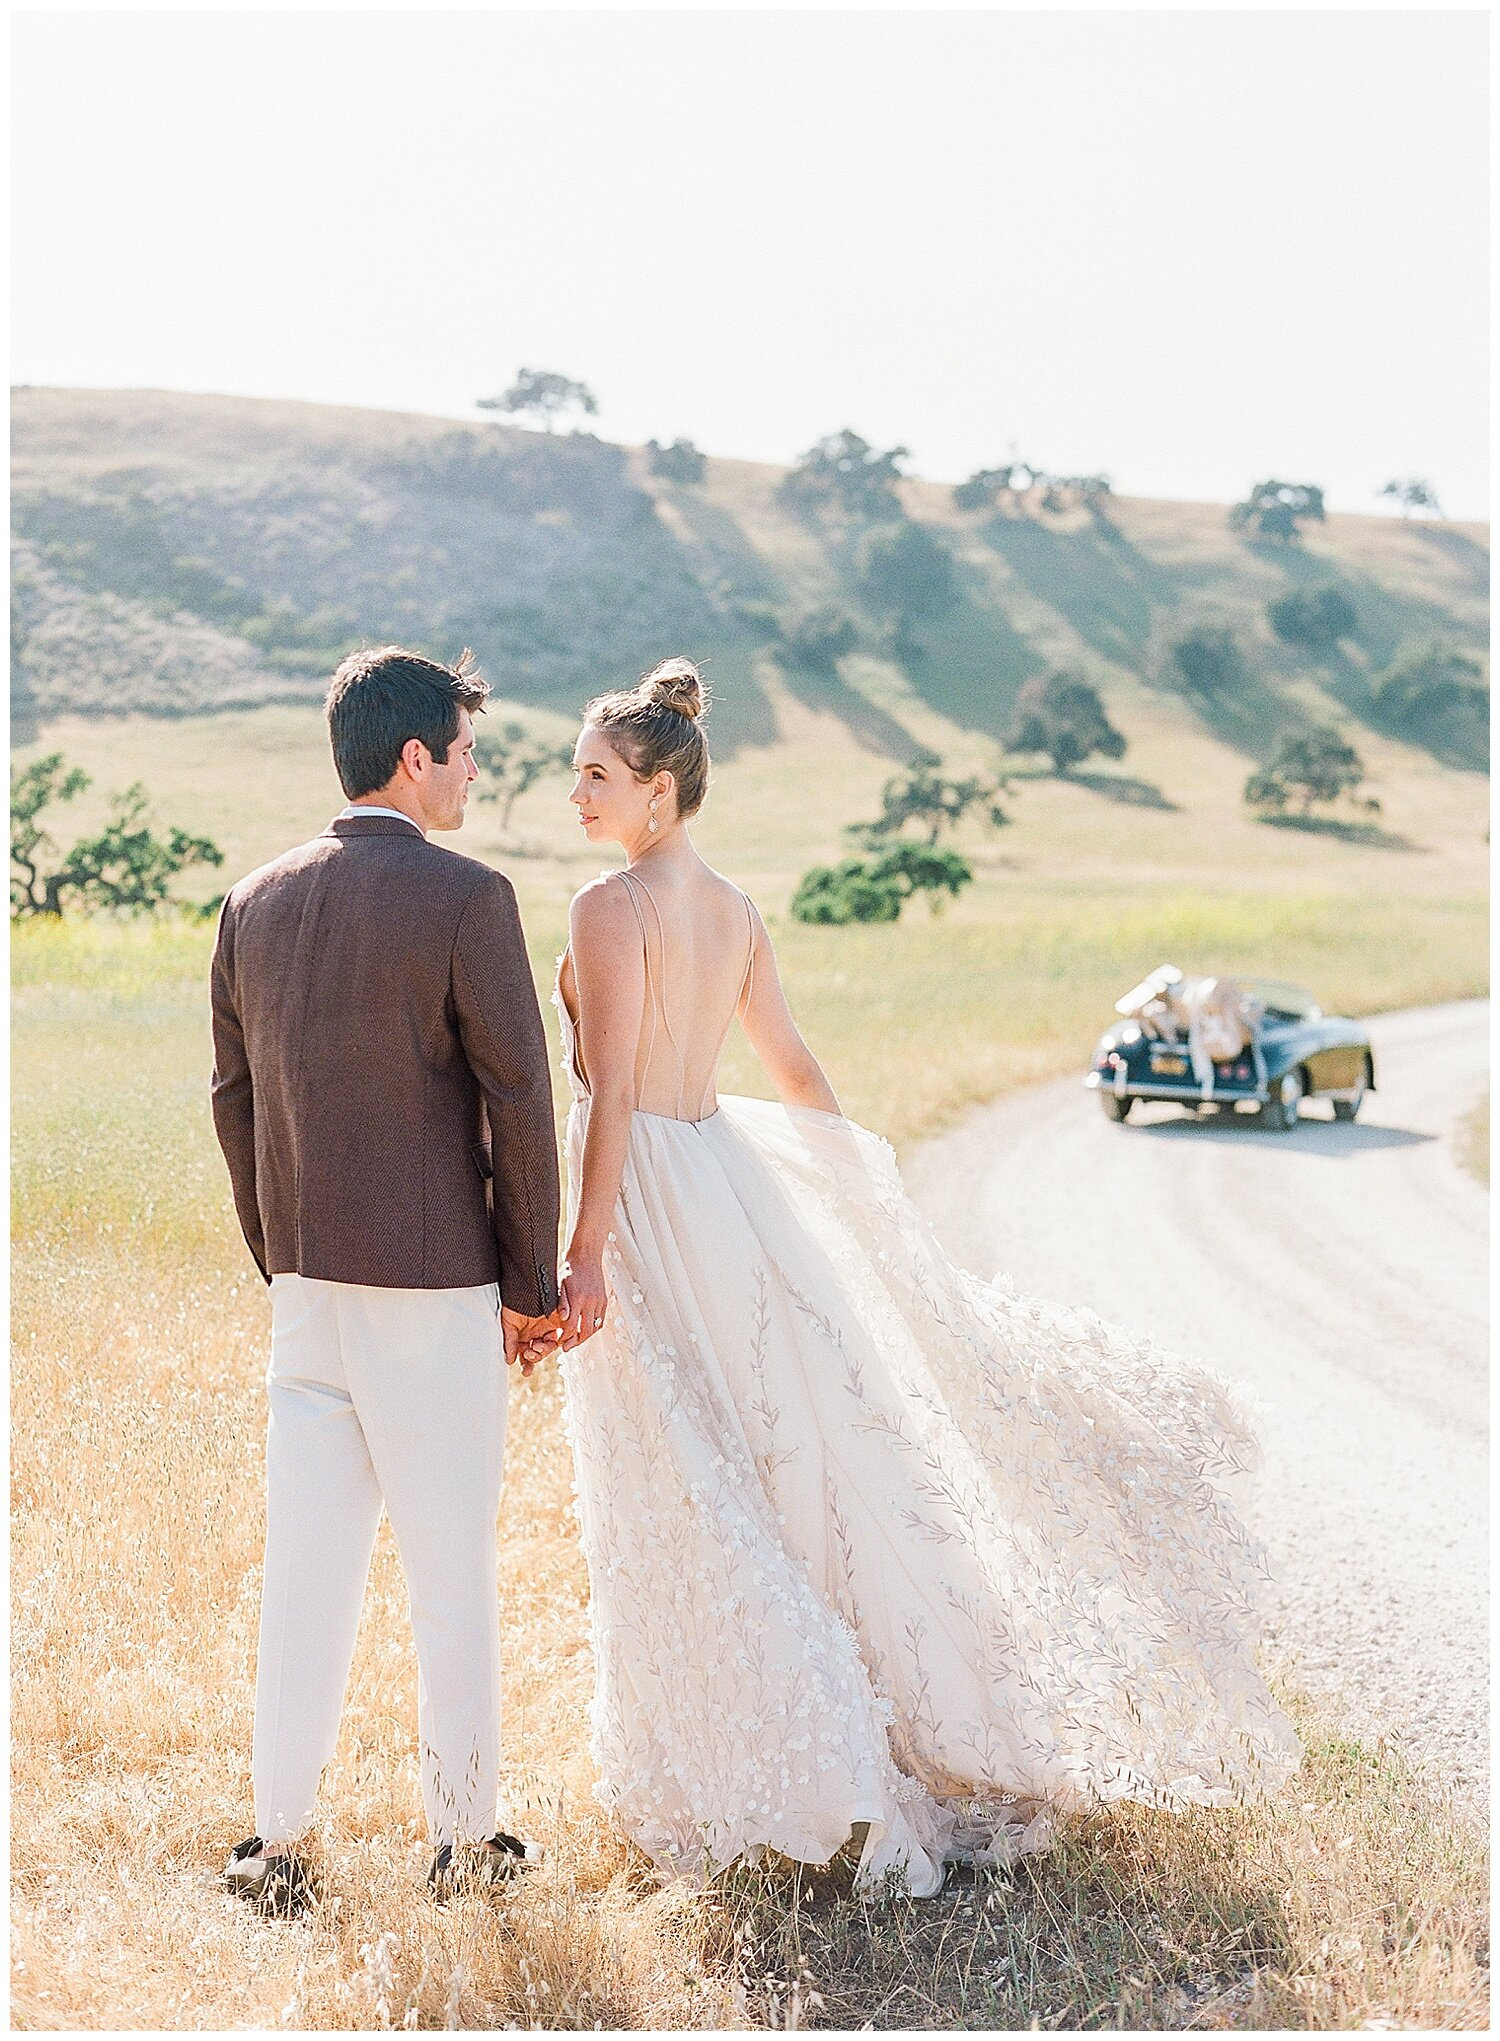 Janine_Licare_Photography_San_Francisco_Kestrel_Park_Santa_Ynez_Sunstone_Villa_Winer_Wedding_Photographer_Meadowood_Napa_Valley_Sonoma_0068.jpg